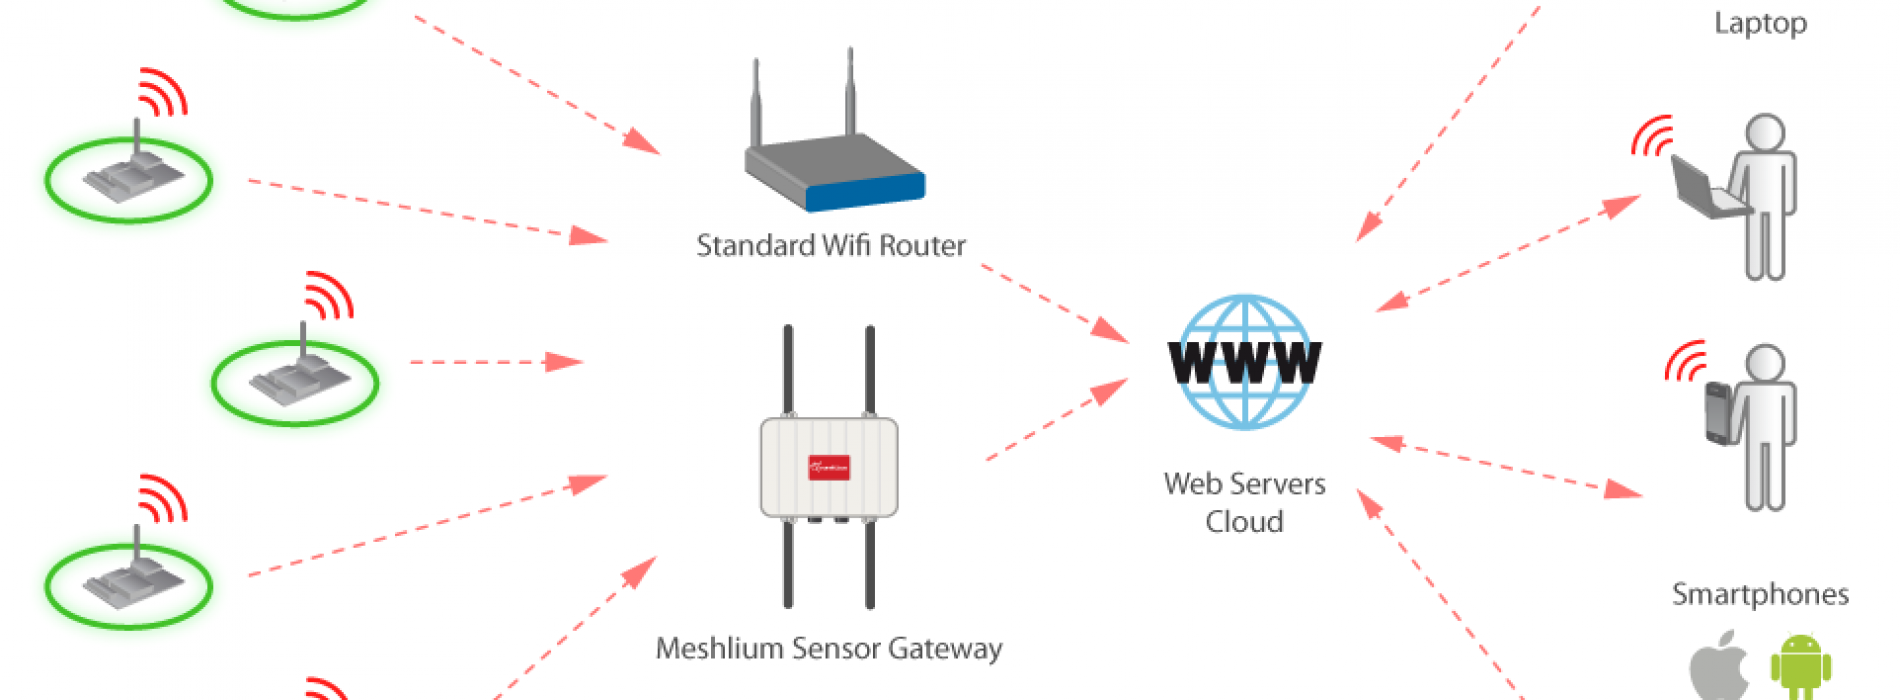 New Libelium Wifi module for Waspmote to connect directly to Cloud Servers and Android platforms